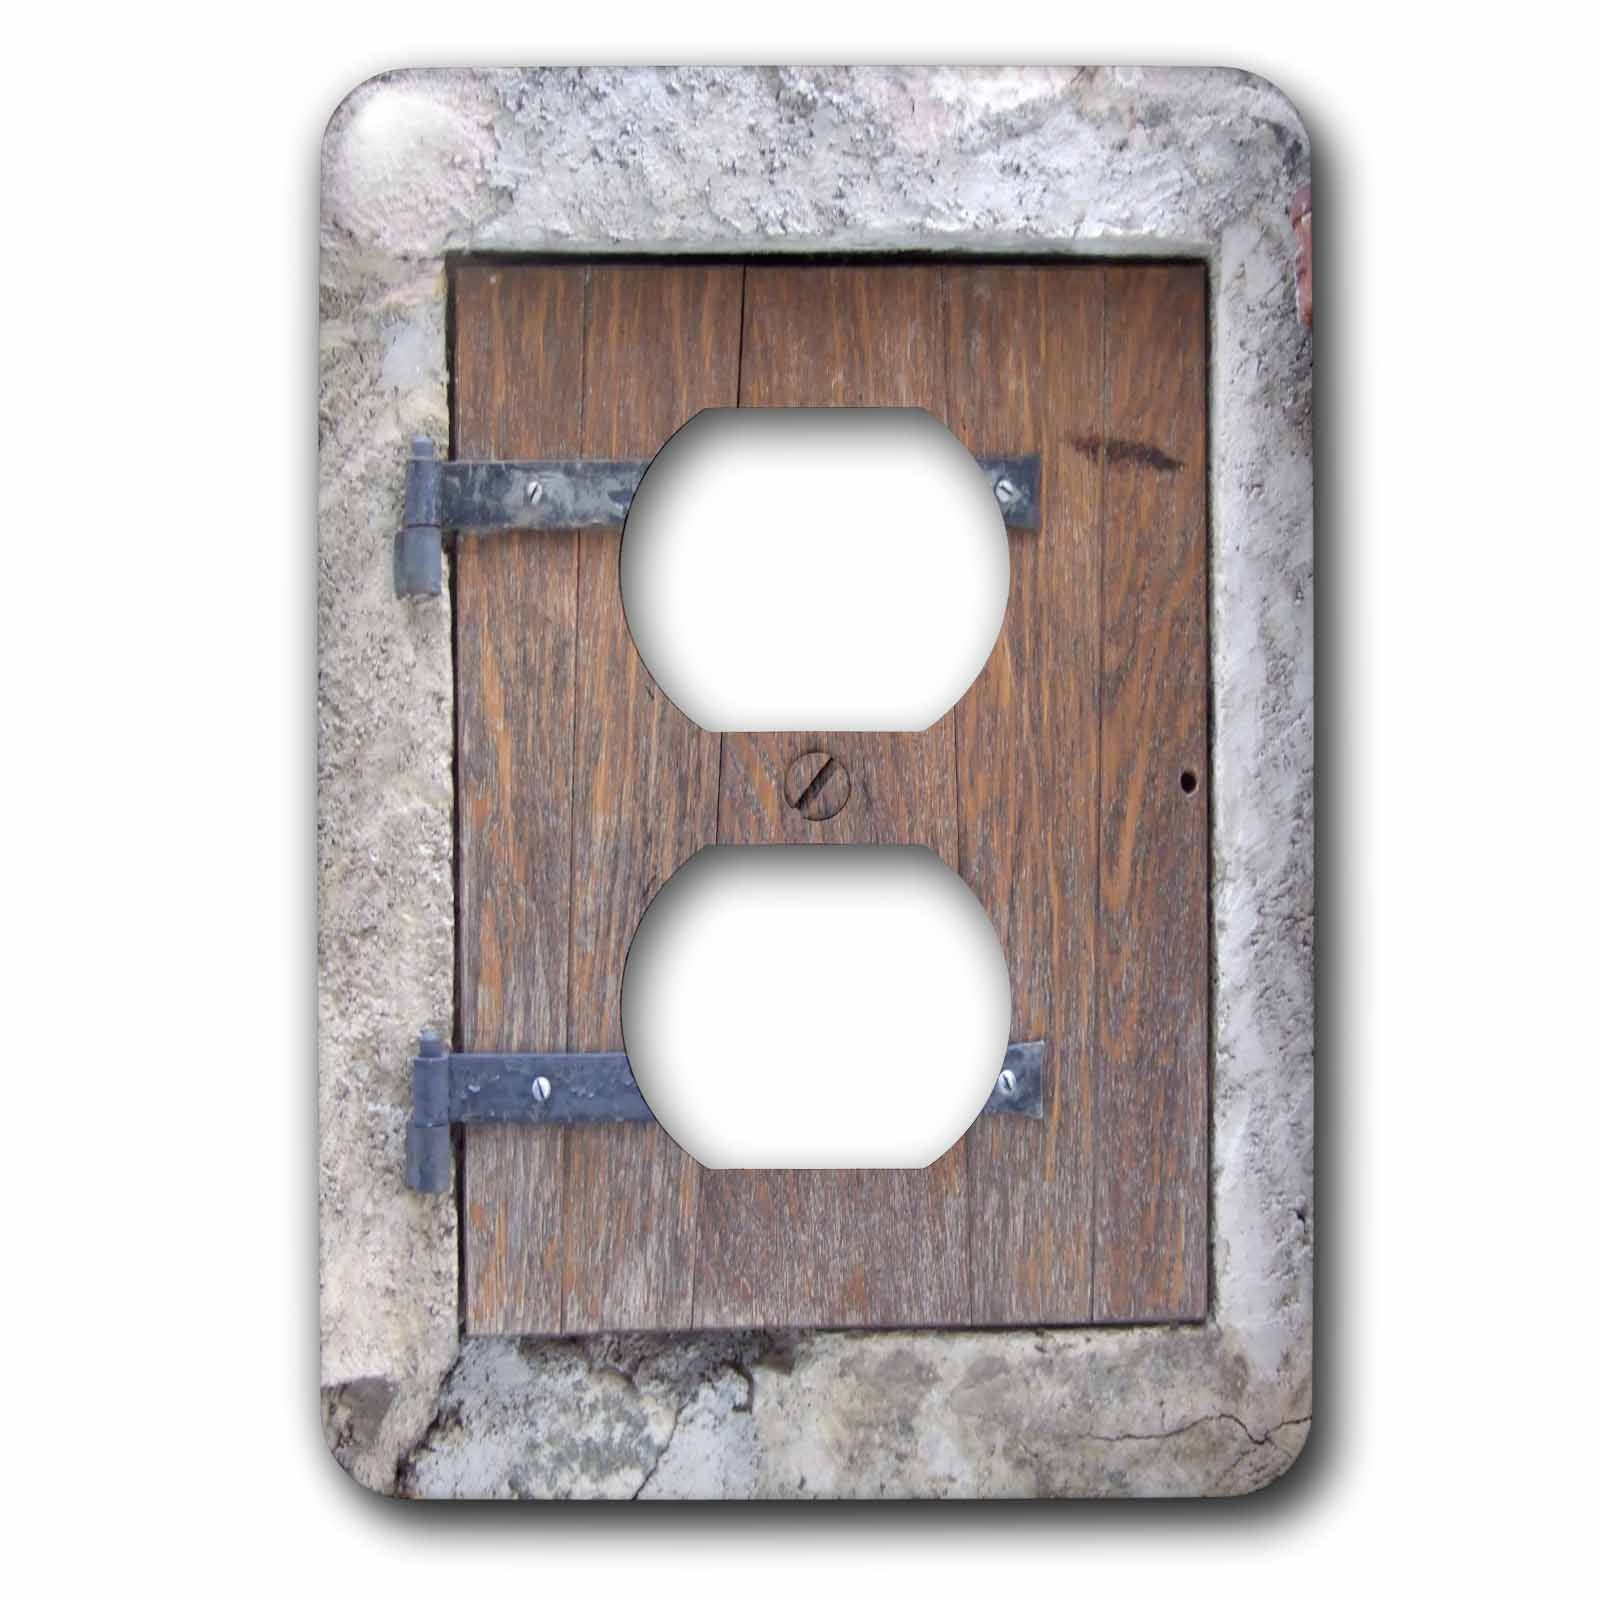 3dRose lsp_157619_6  Wooden Medieval Style Trap Door Photo Print Offbeat Humor Unusual Bizarre Humorous Fun Funny 2 Plug Outlet Cover